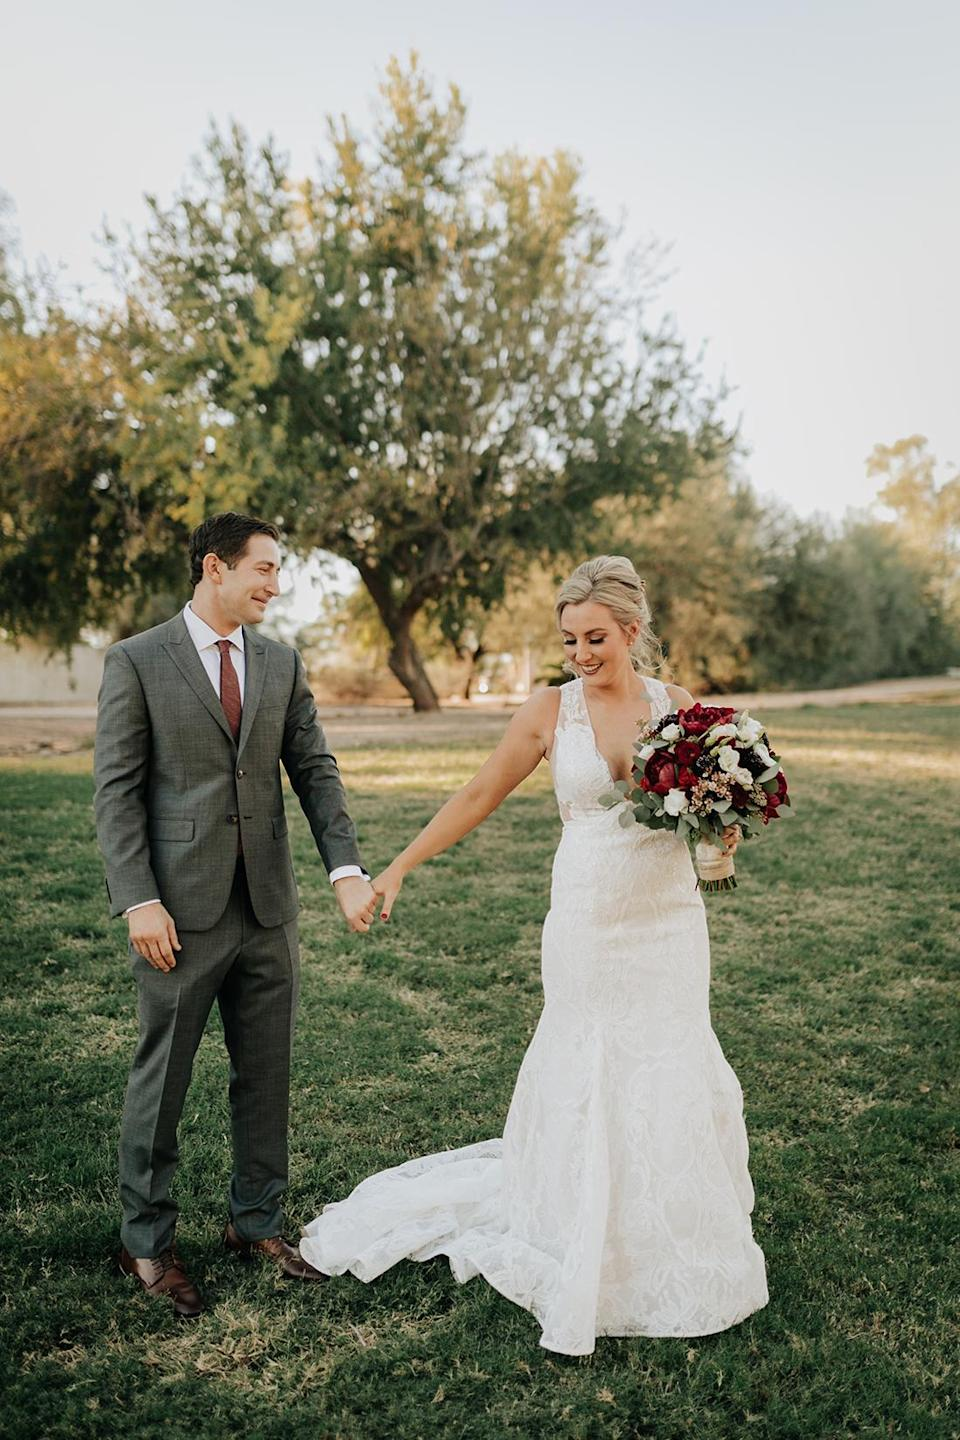 """The """"real"""" first-look photo from Erin and Ean Goldberg's wedding day. (Photo: Molly McElenney Photography)"""